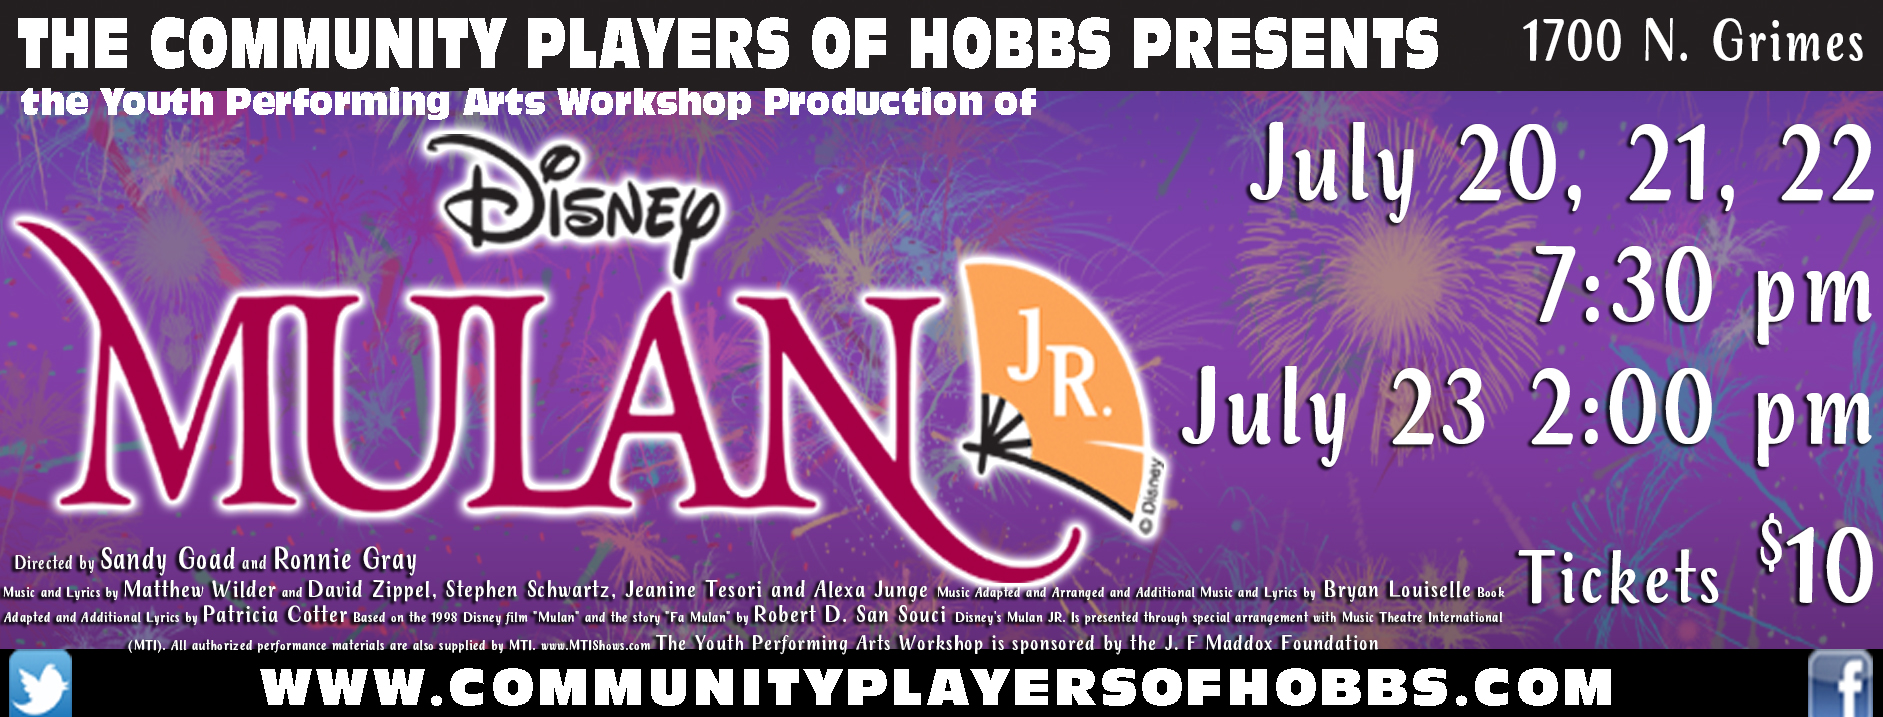 Community Players of Hobbs Box Office